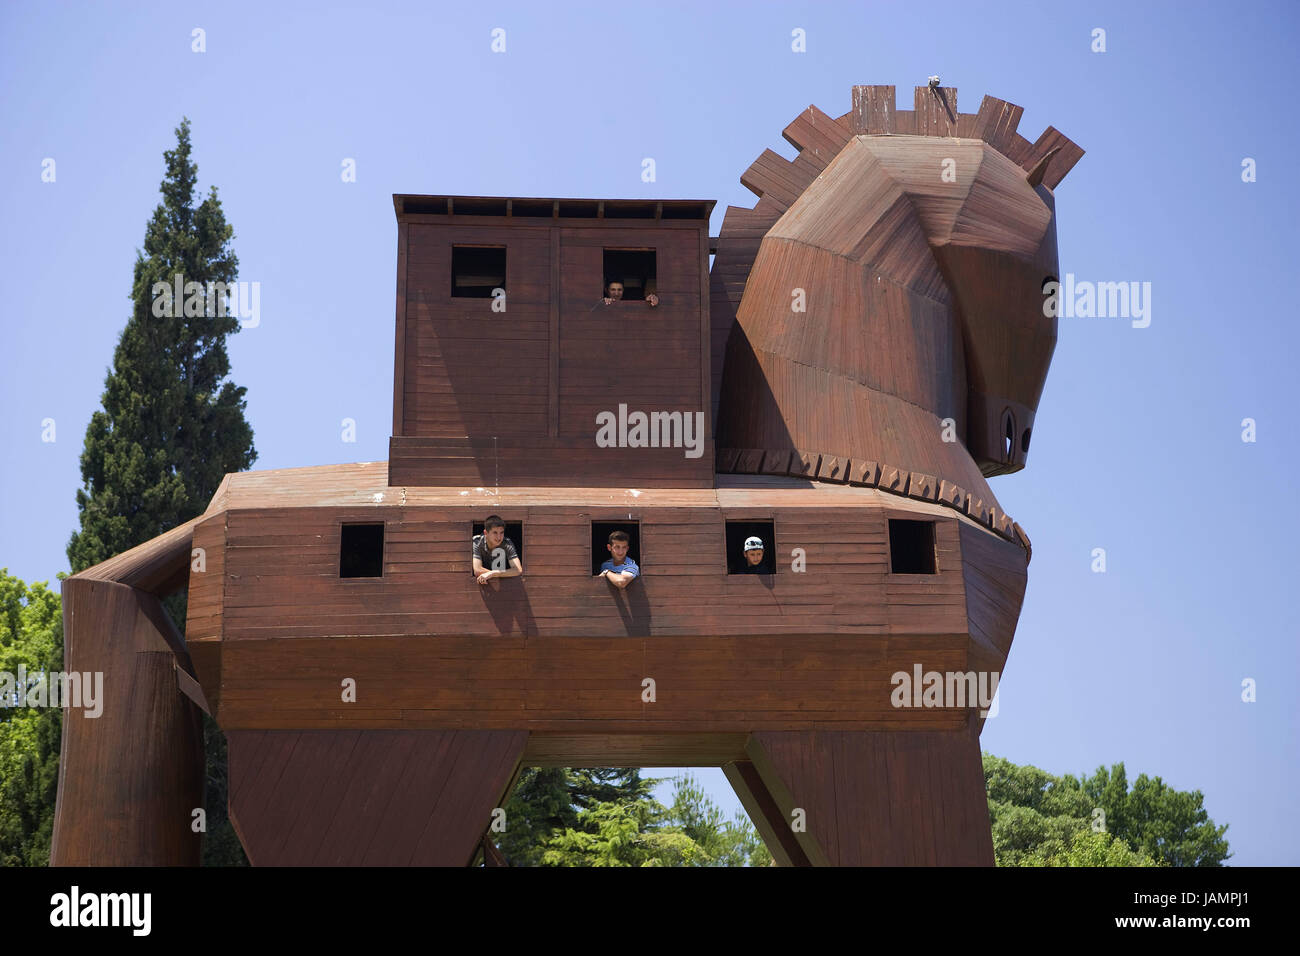 Turkey,Troy,Trojan horse,tourist,no model release,west coast,wooden